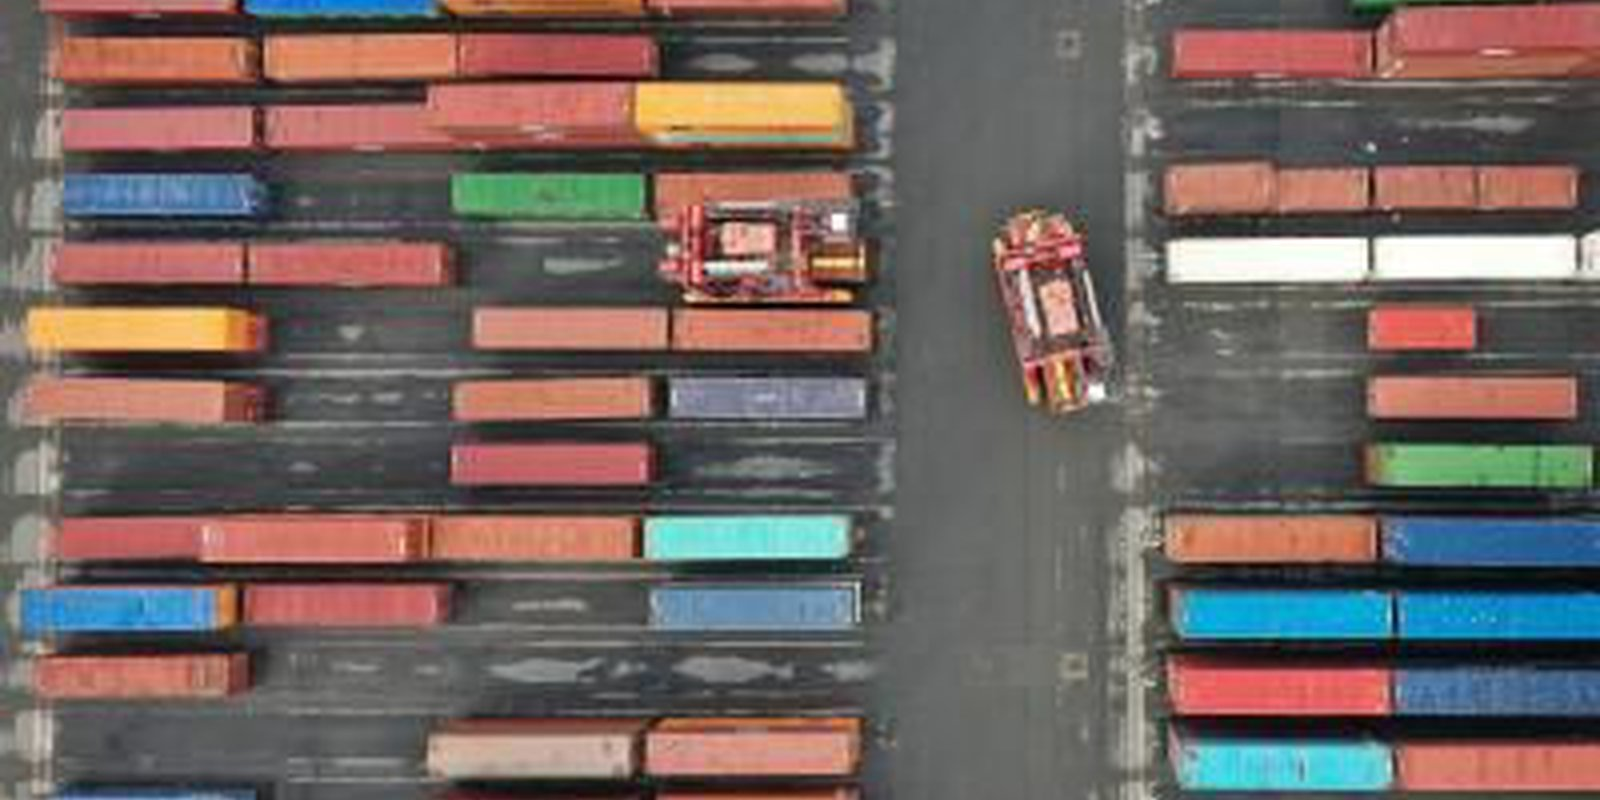 Image — An aerial photo shows Straddle Carriers moving shipping containers at Seaforth Dock in Liverpool, north west England on 17 March2021. Photo by PAUL ELLIS/AFP via Getty Images.